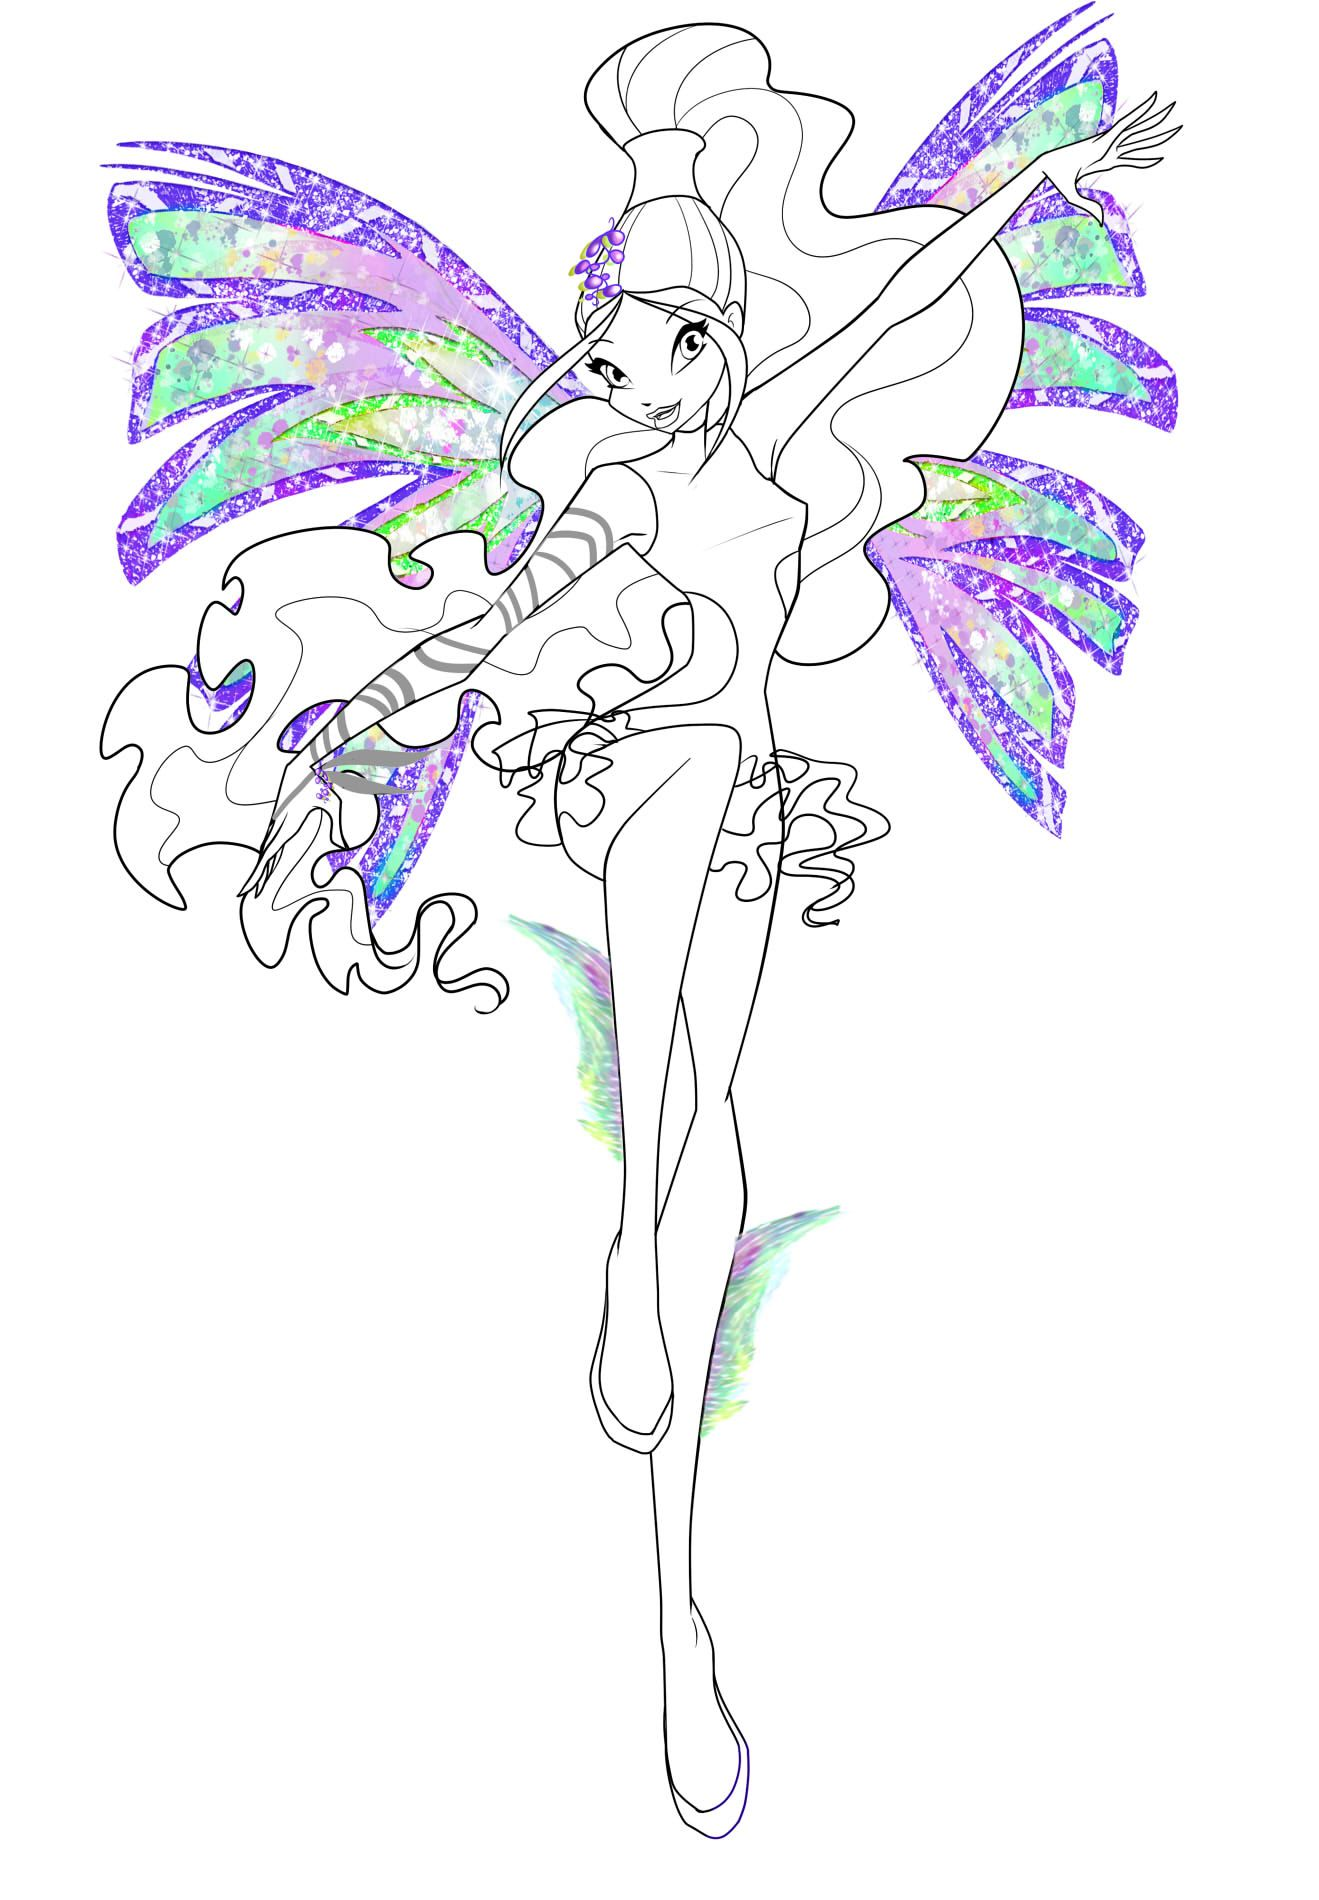 Winx Club Aisha/Layla | Coloring pages, Winx club, Drawings